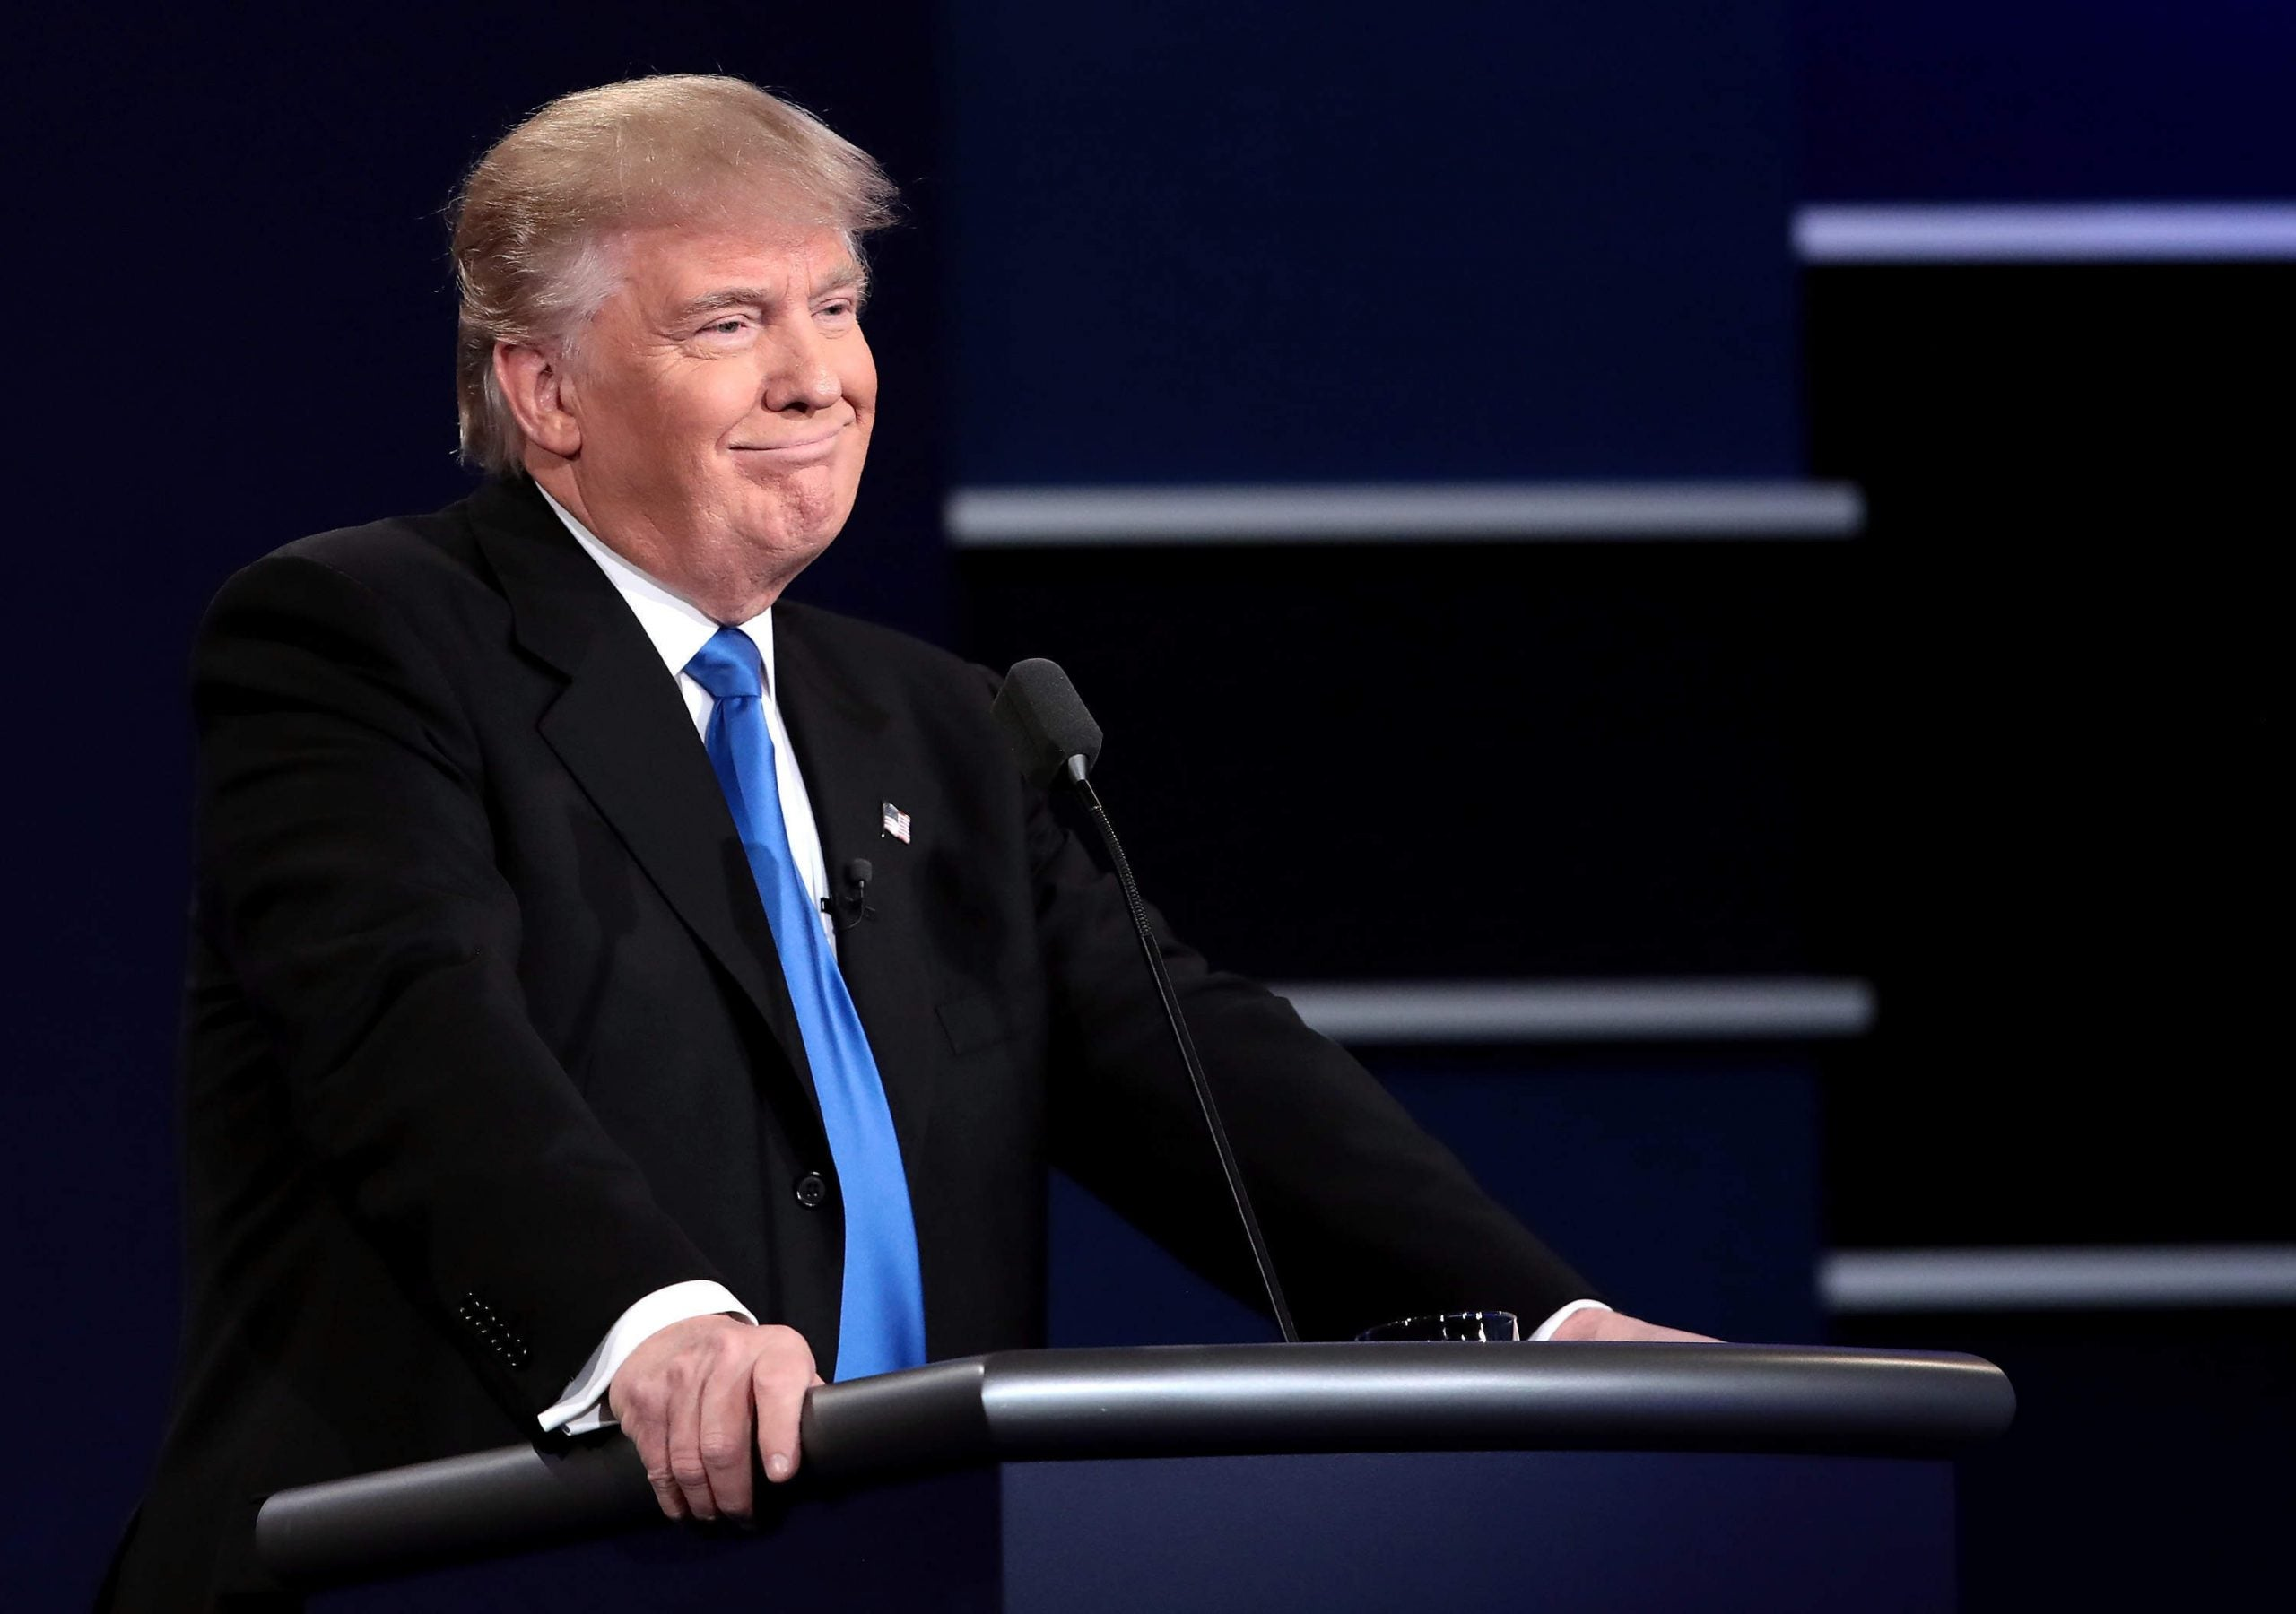 What does Donald Trump pulling out of the Paris Agreement mean for climate change?